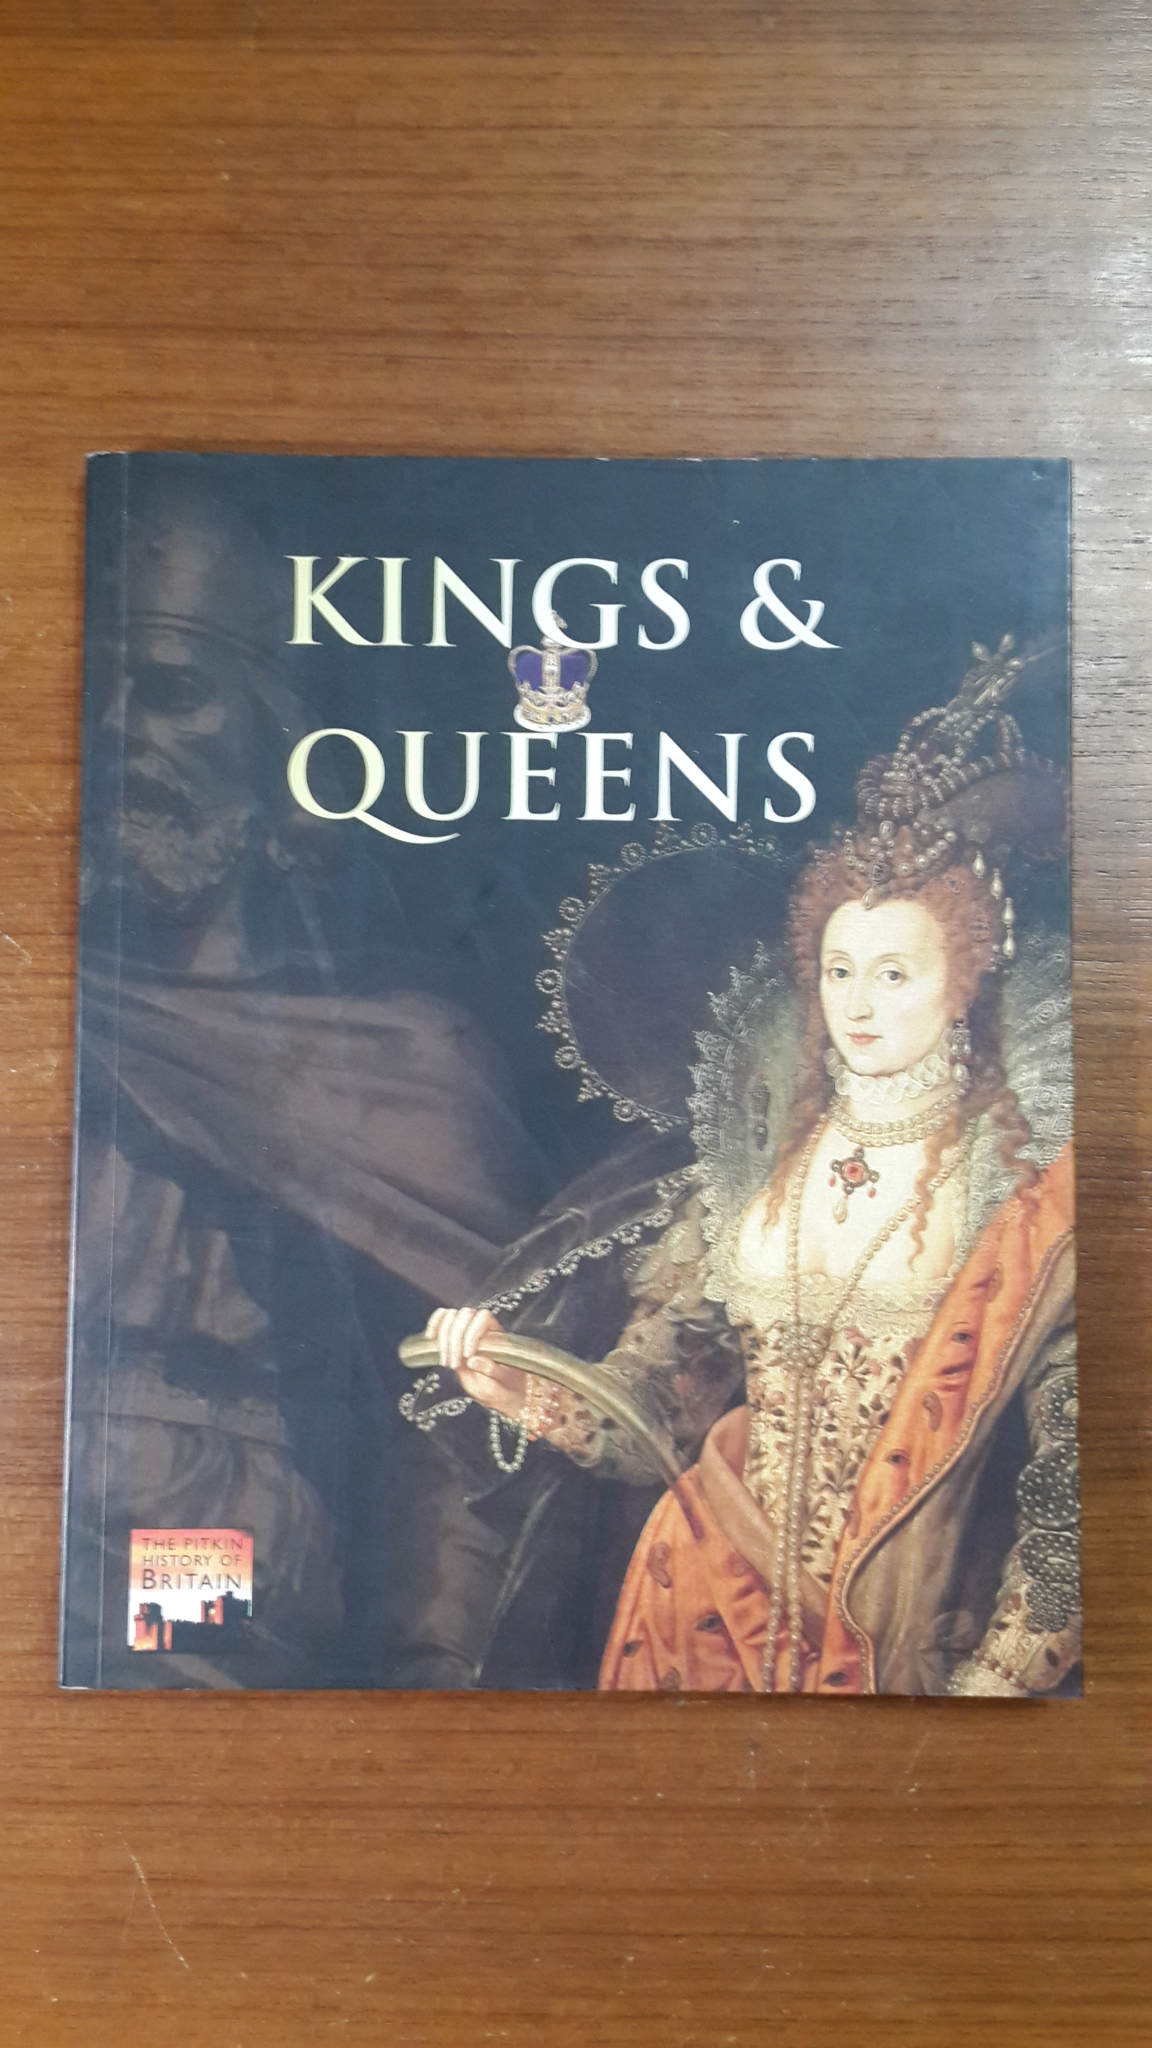 KINGS & QUEENS / BRENDA AND BRIAN WILLIAMS